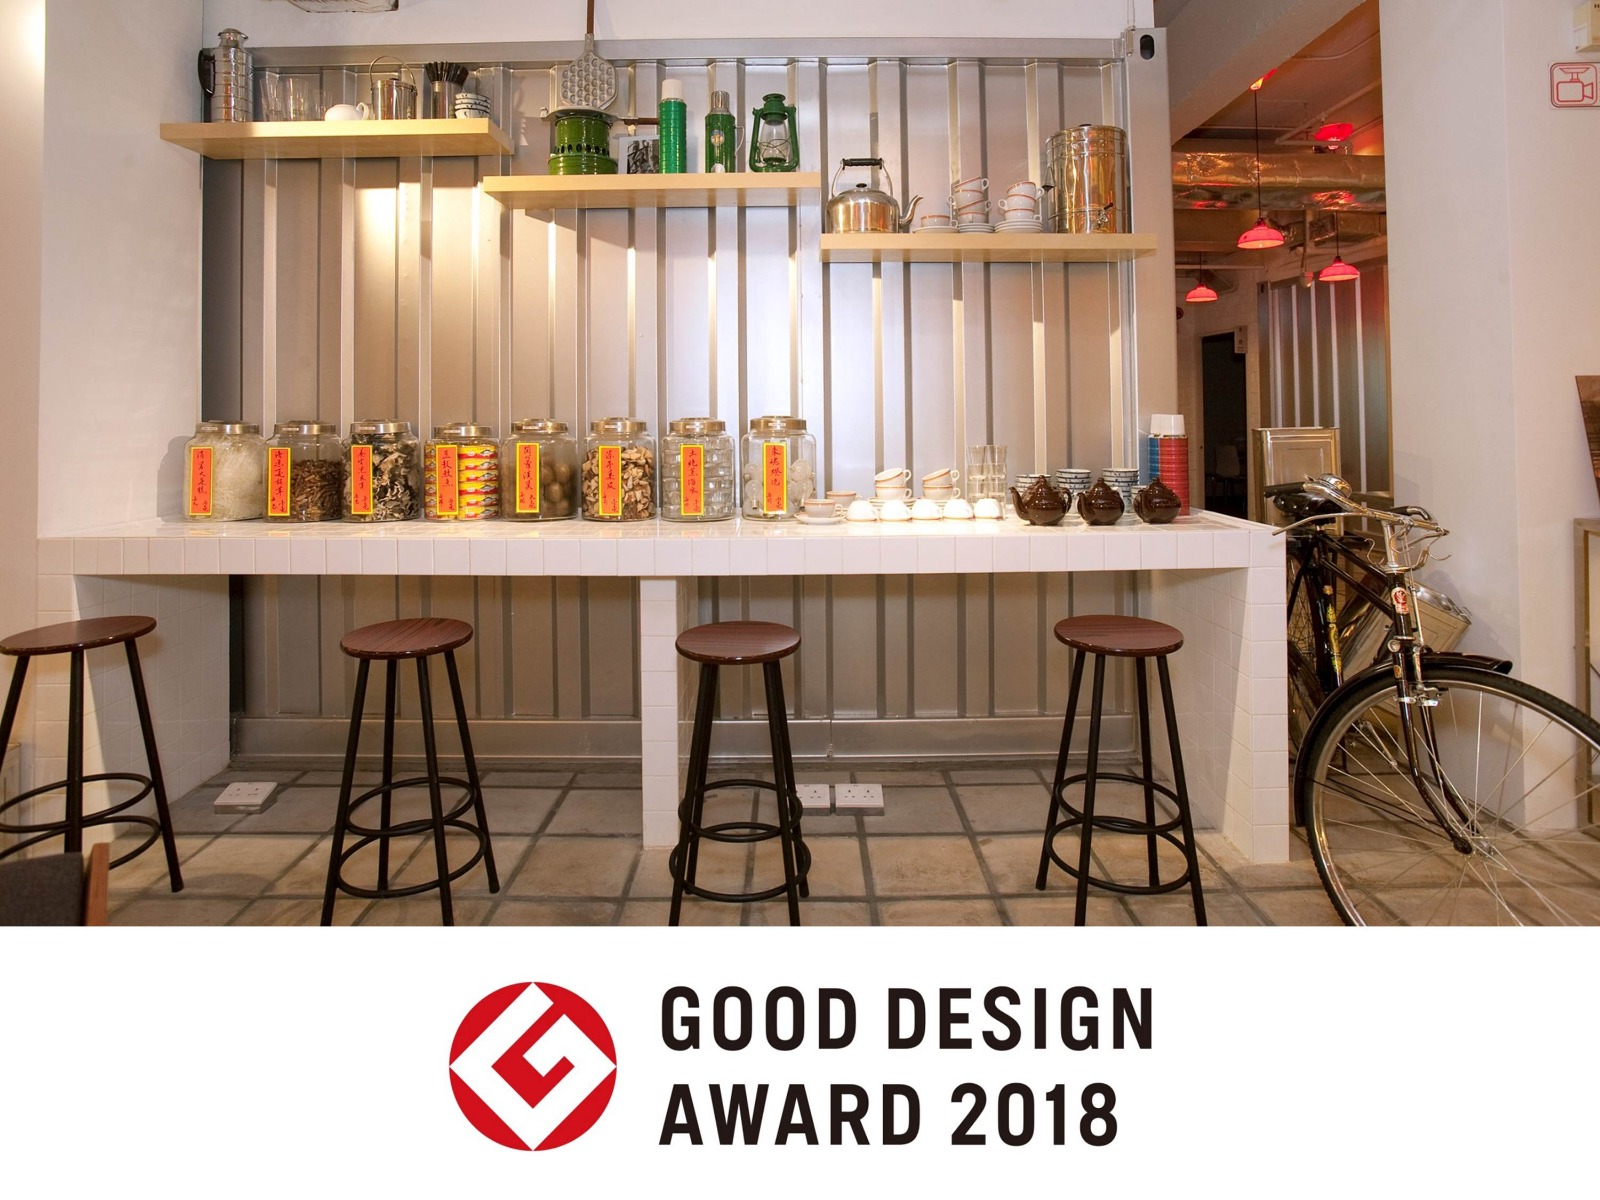 SCHSA Oi Man Centre – Japan's Good Design Award 2018